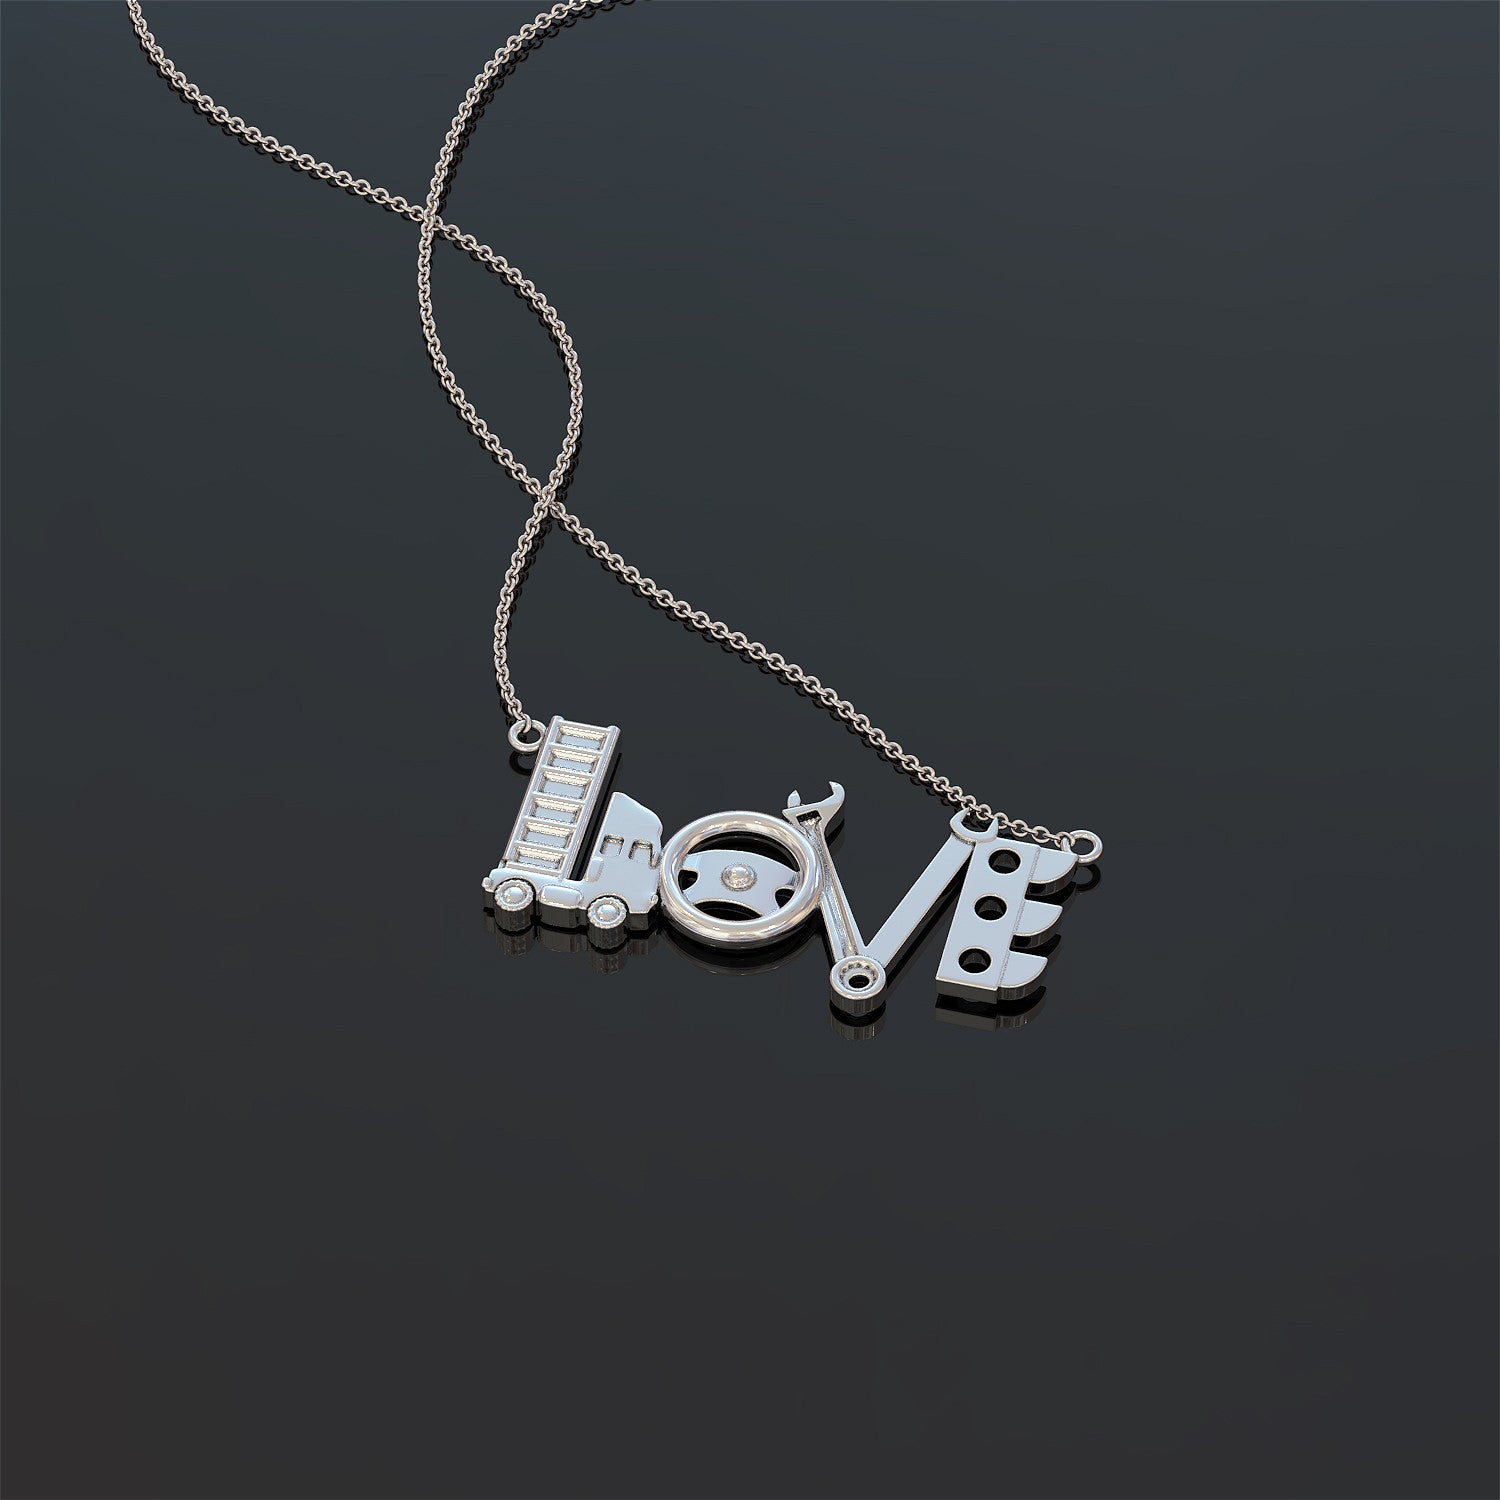 Truck Driver LOVE Pendant Necklace